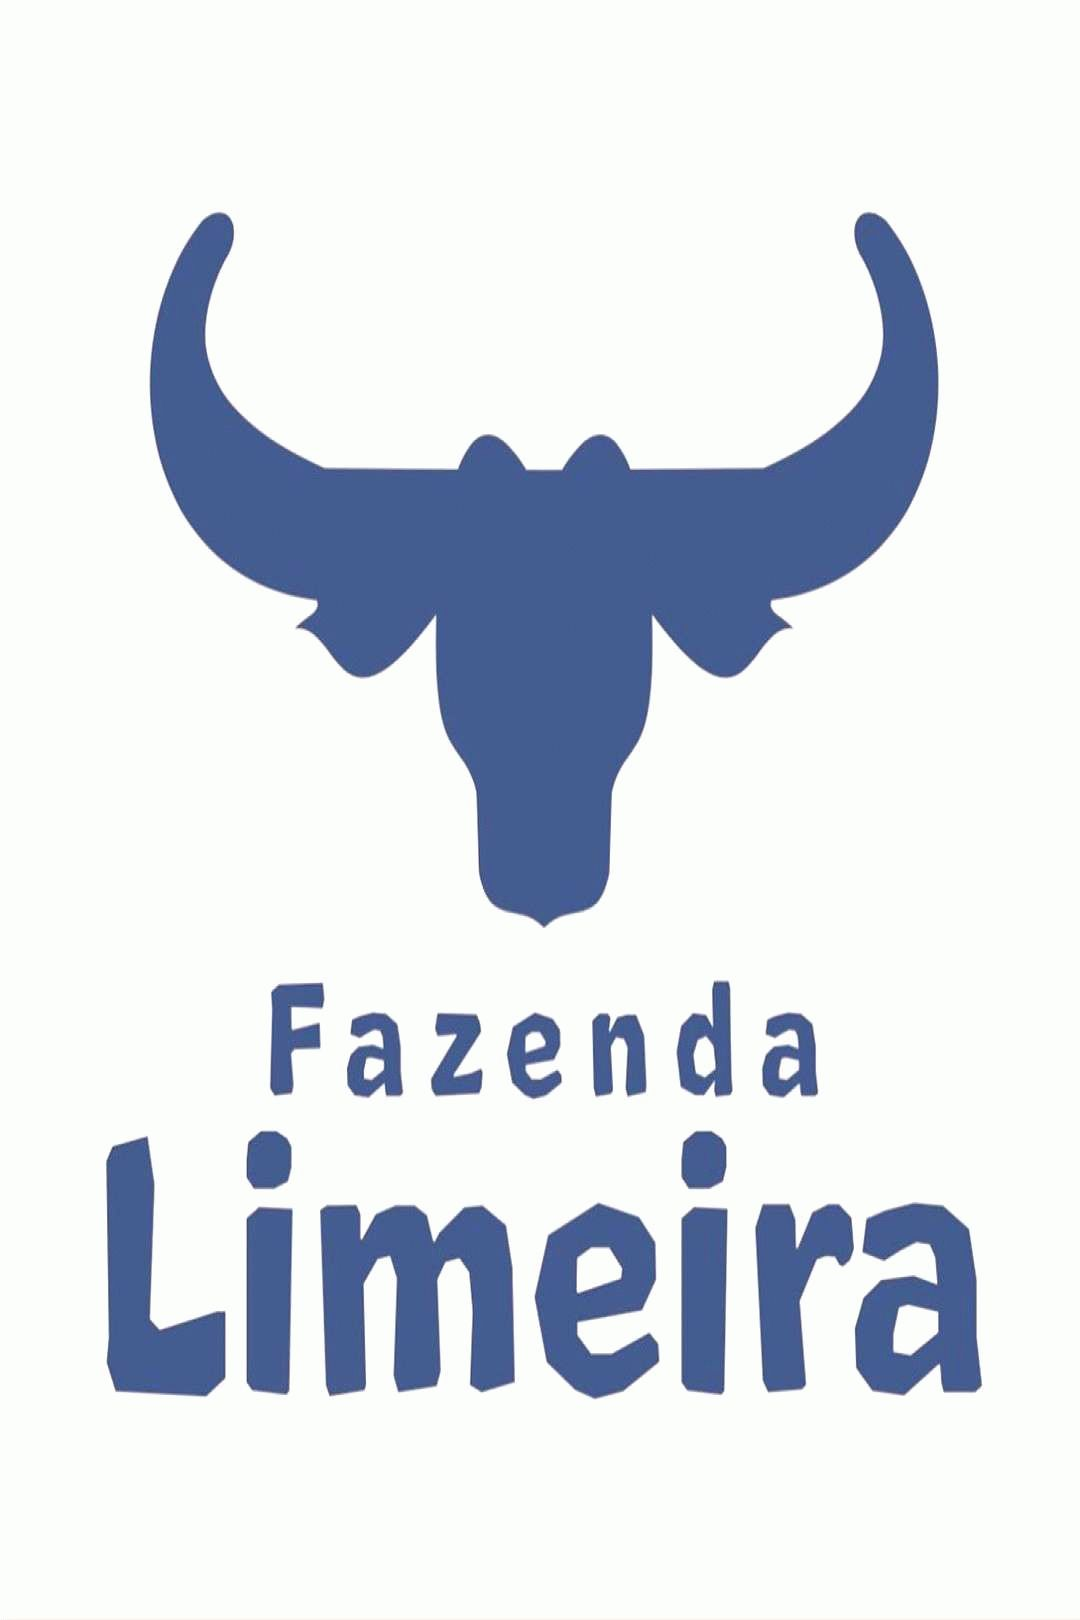 text that says Fazenda Limeira